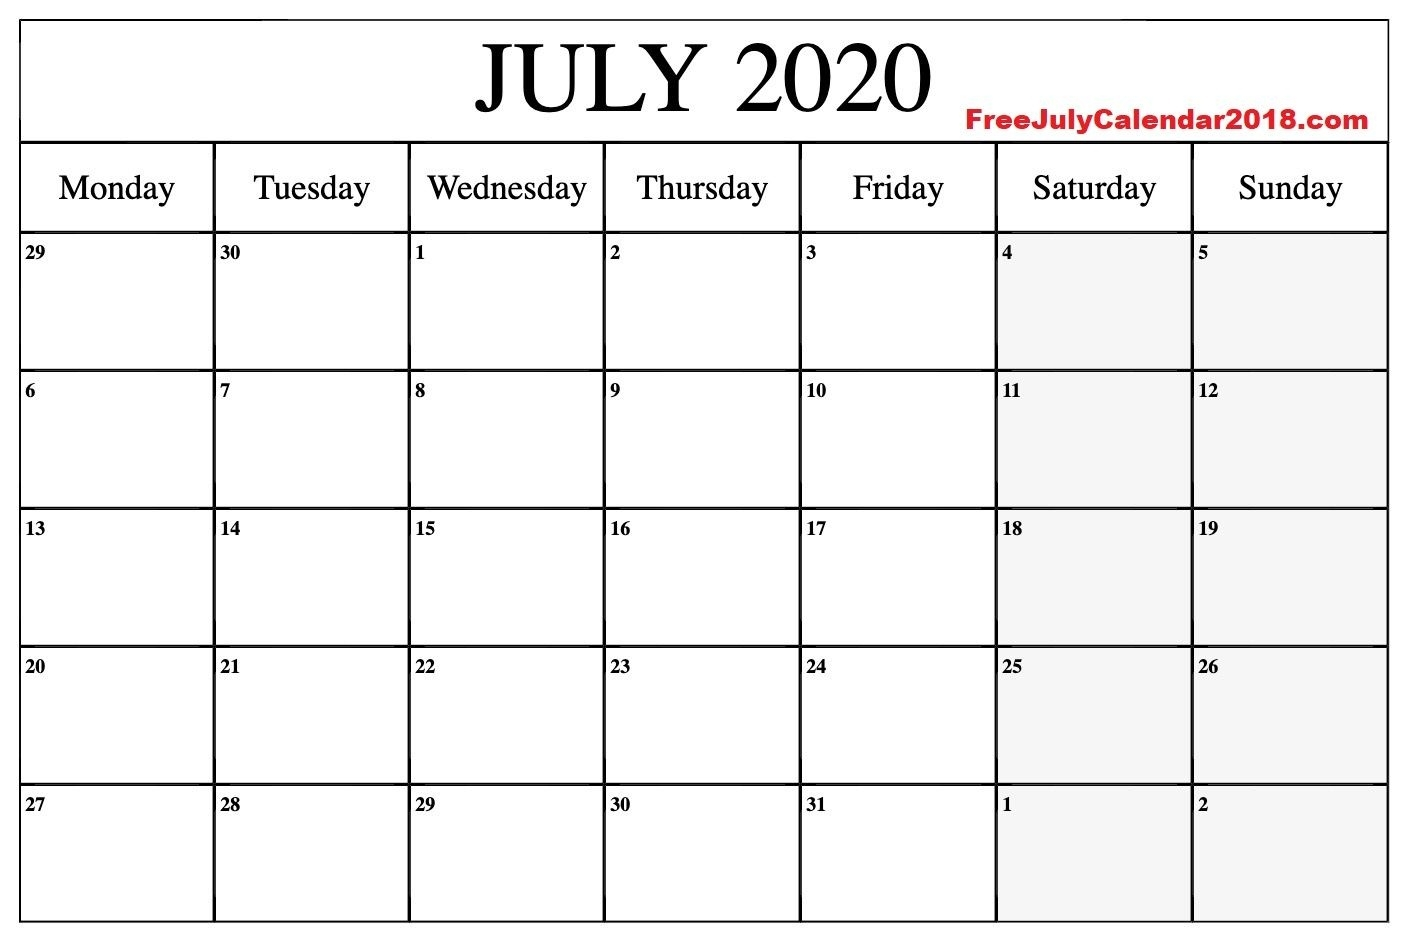 July 2020 Calendar Word Document In 2020 | Calendar